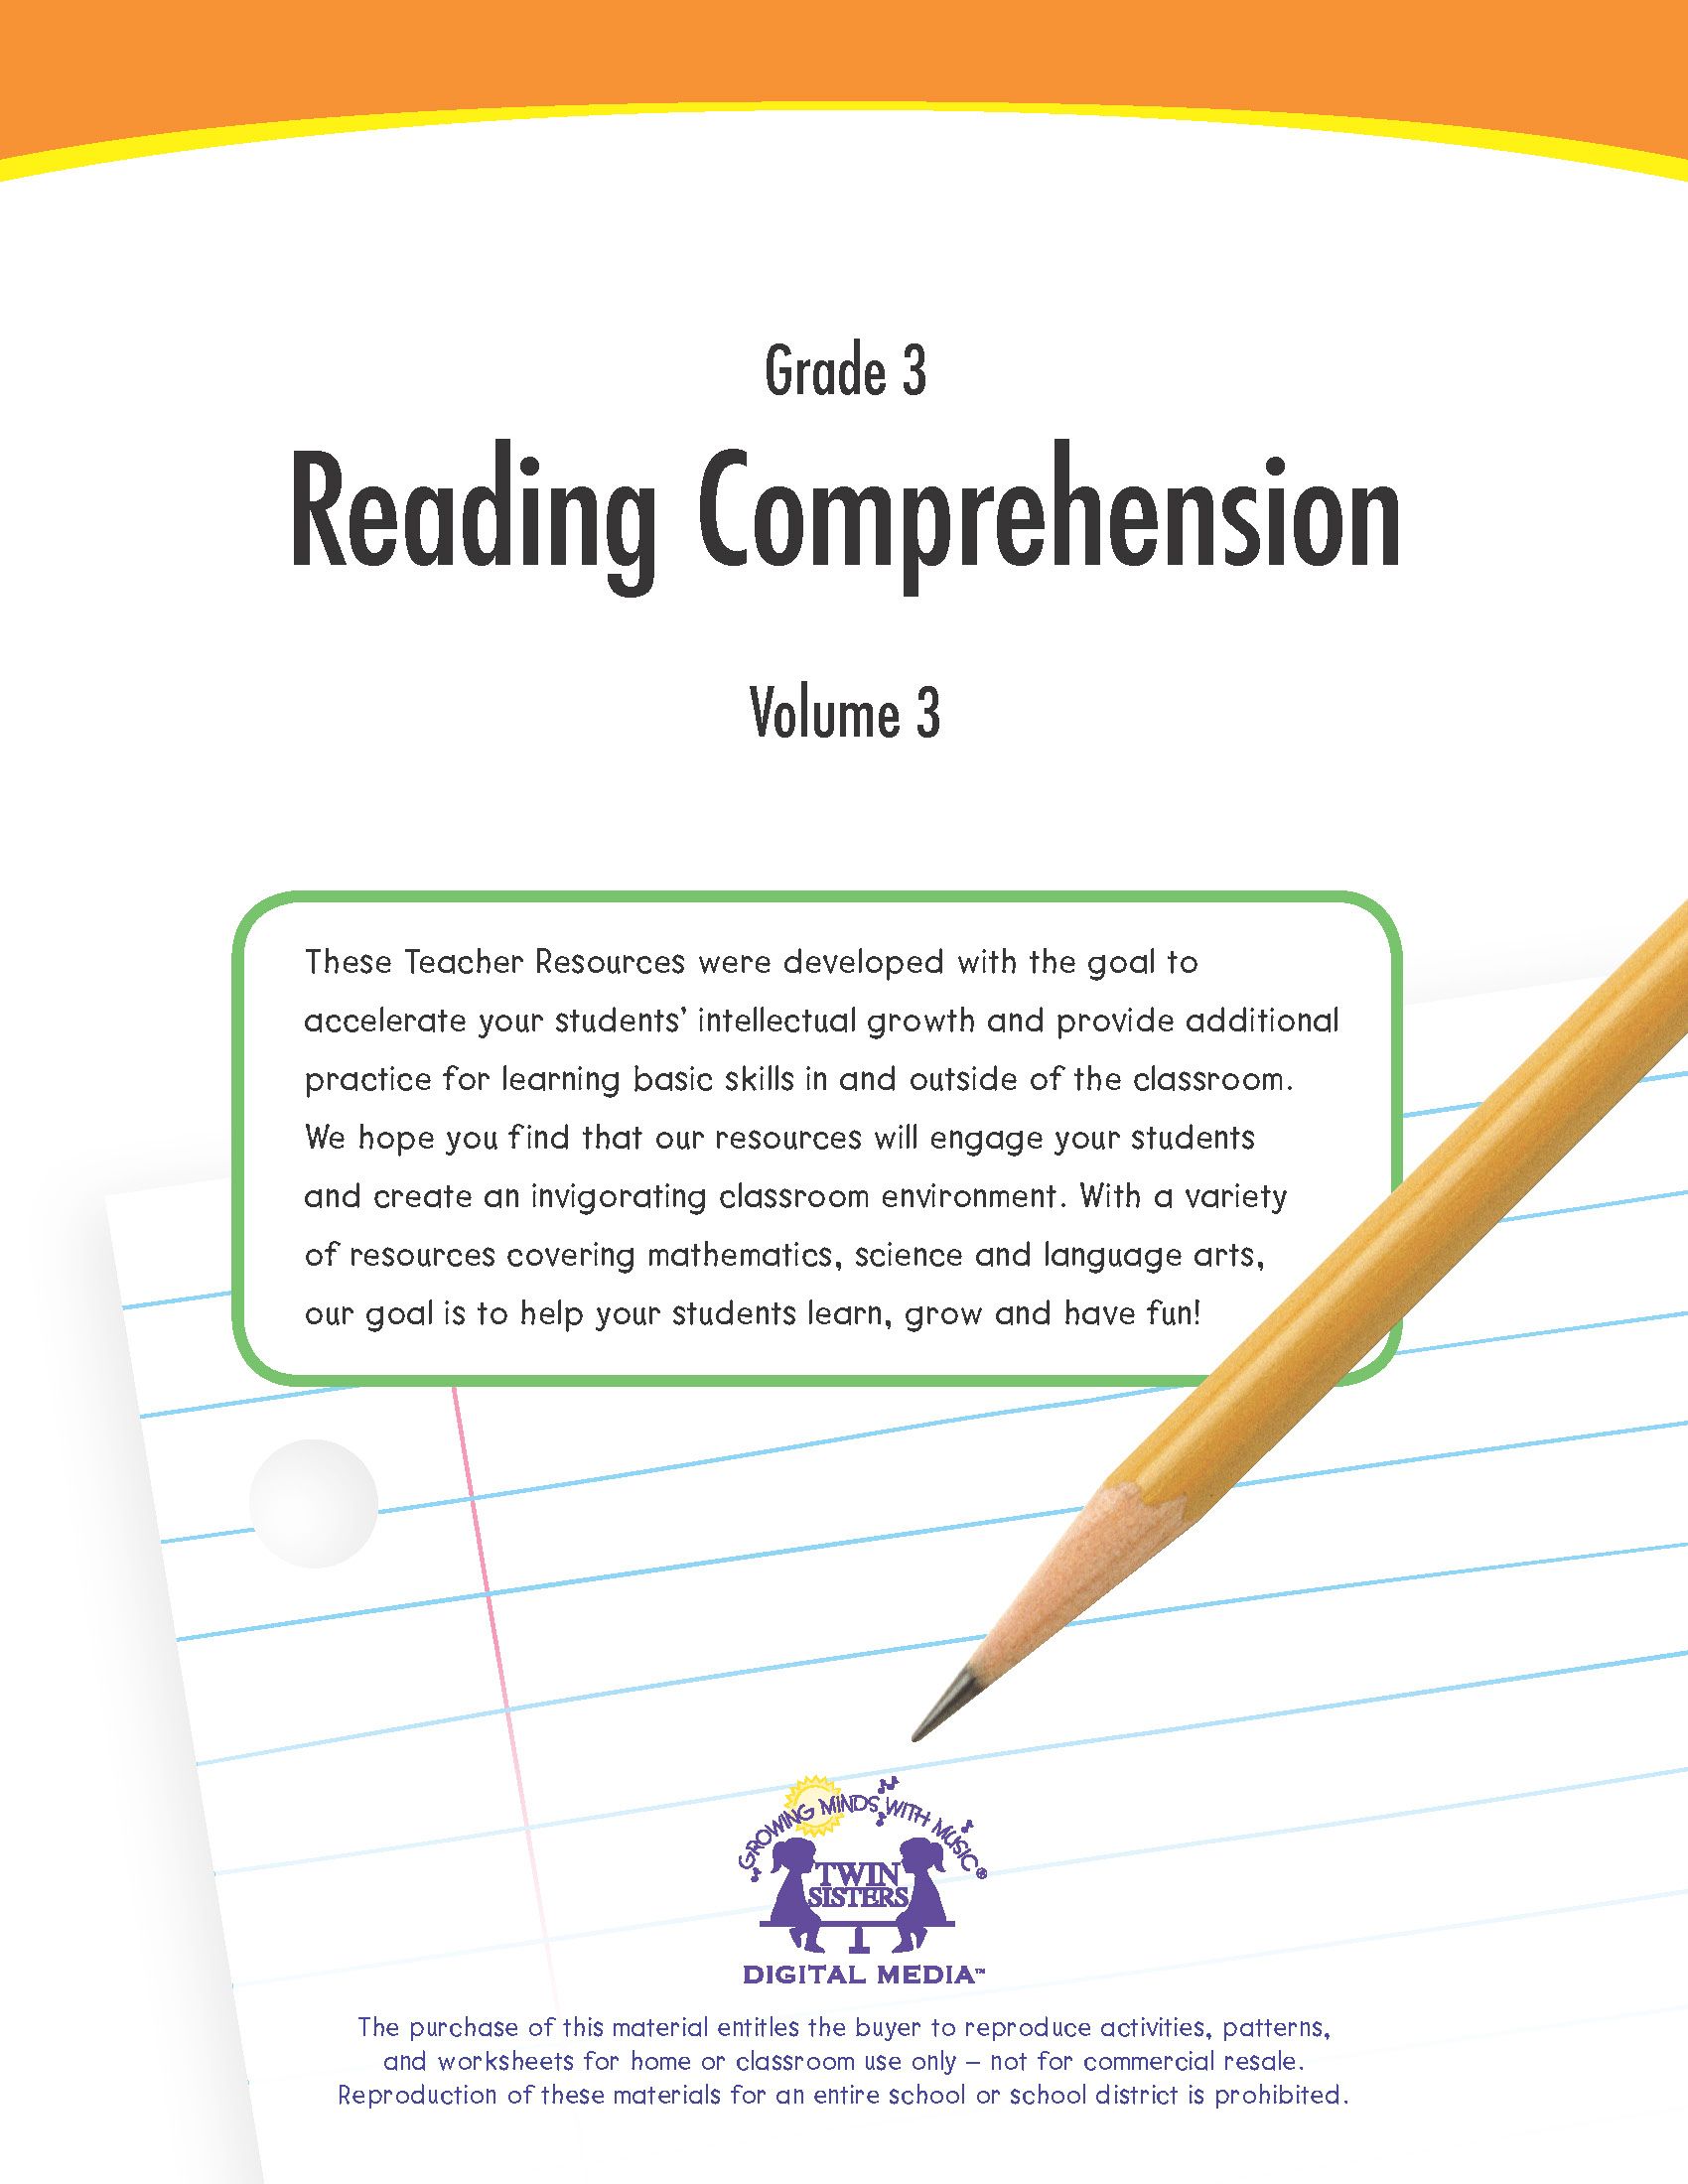 Grade 3 Reading Comprehension Volume 3